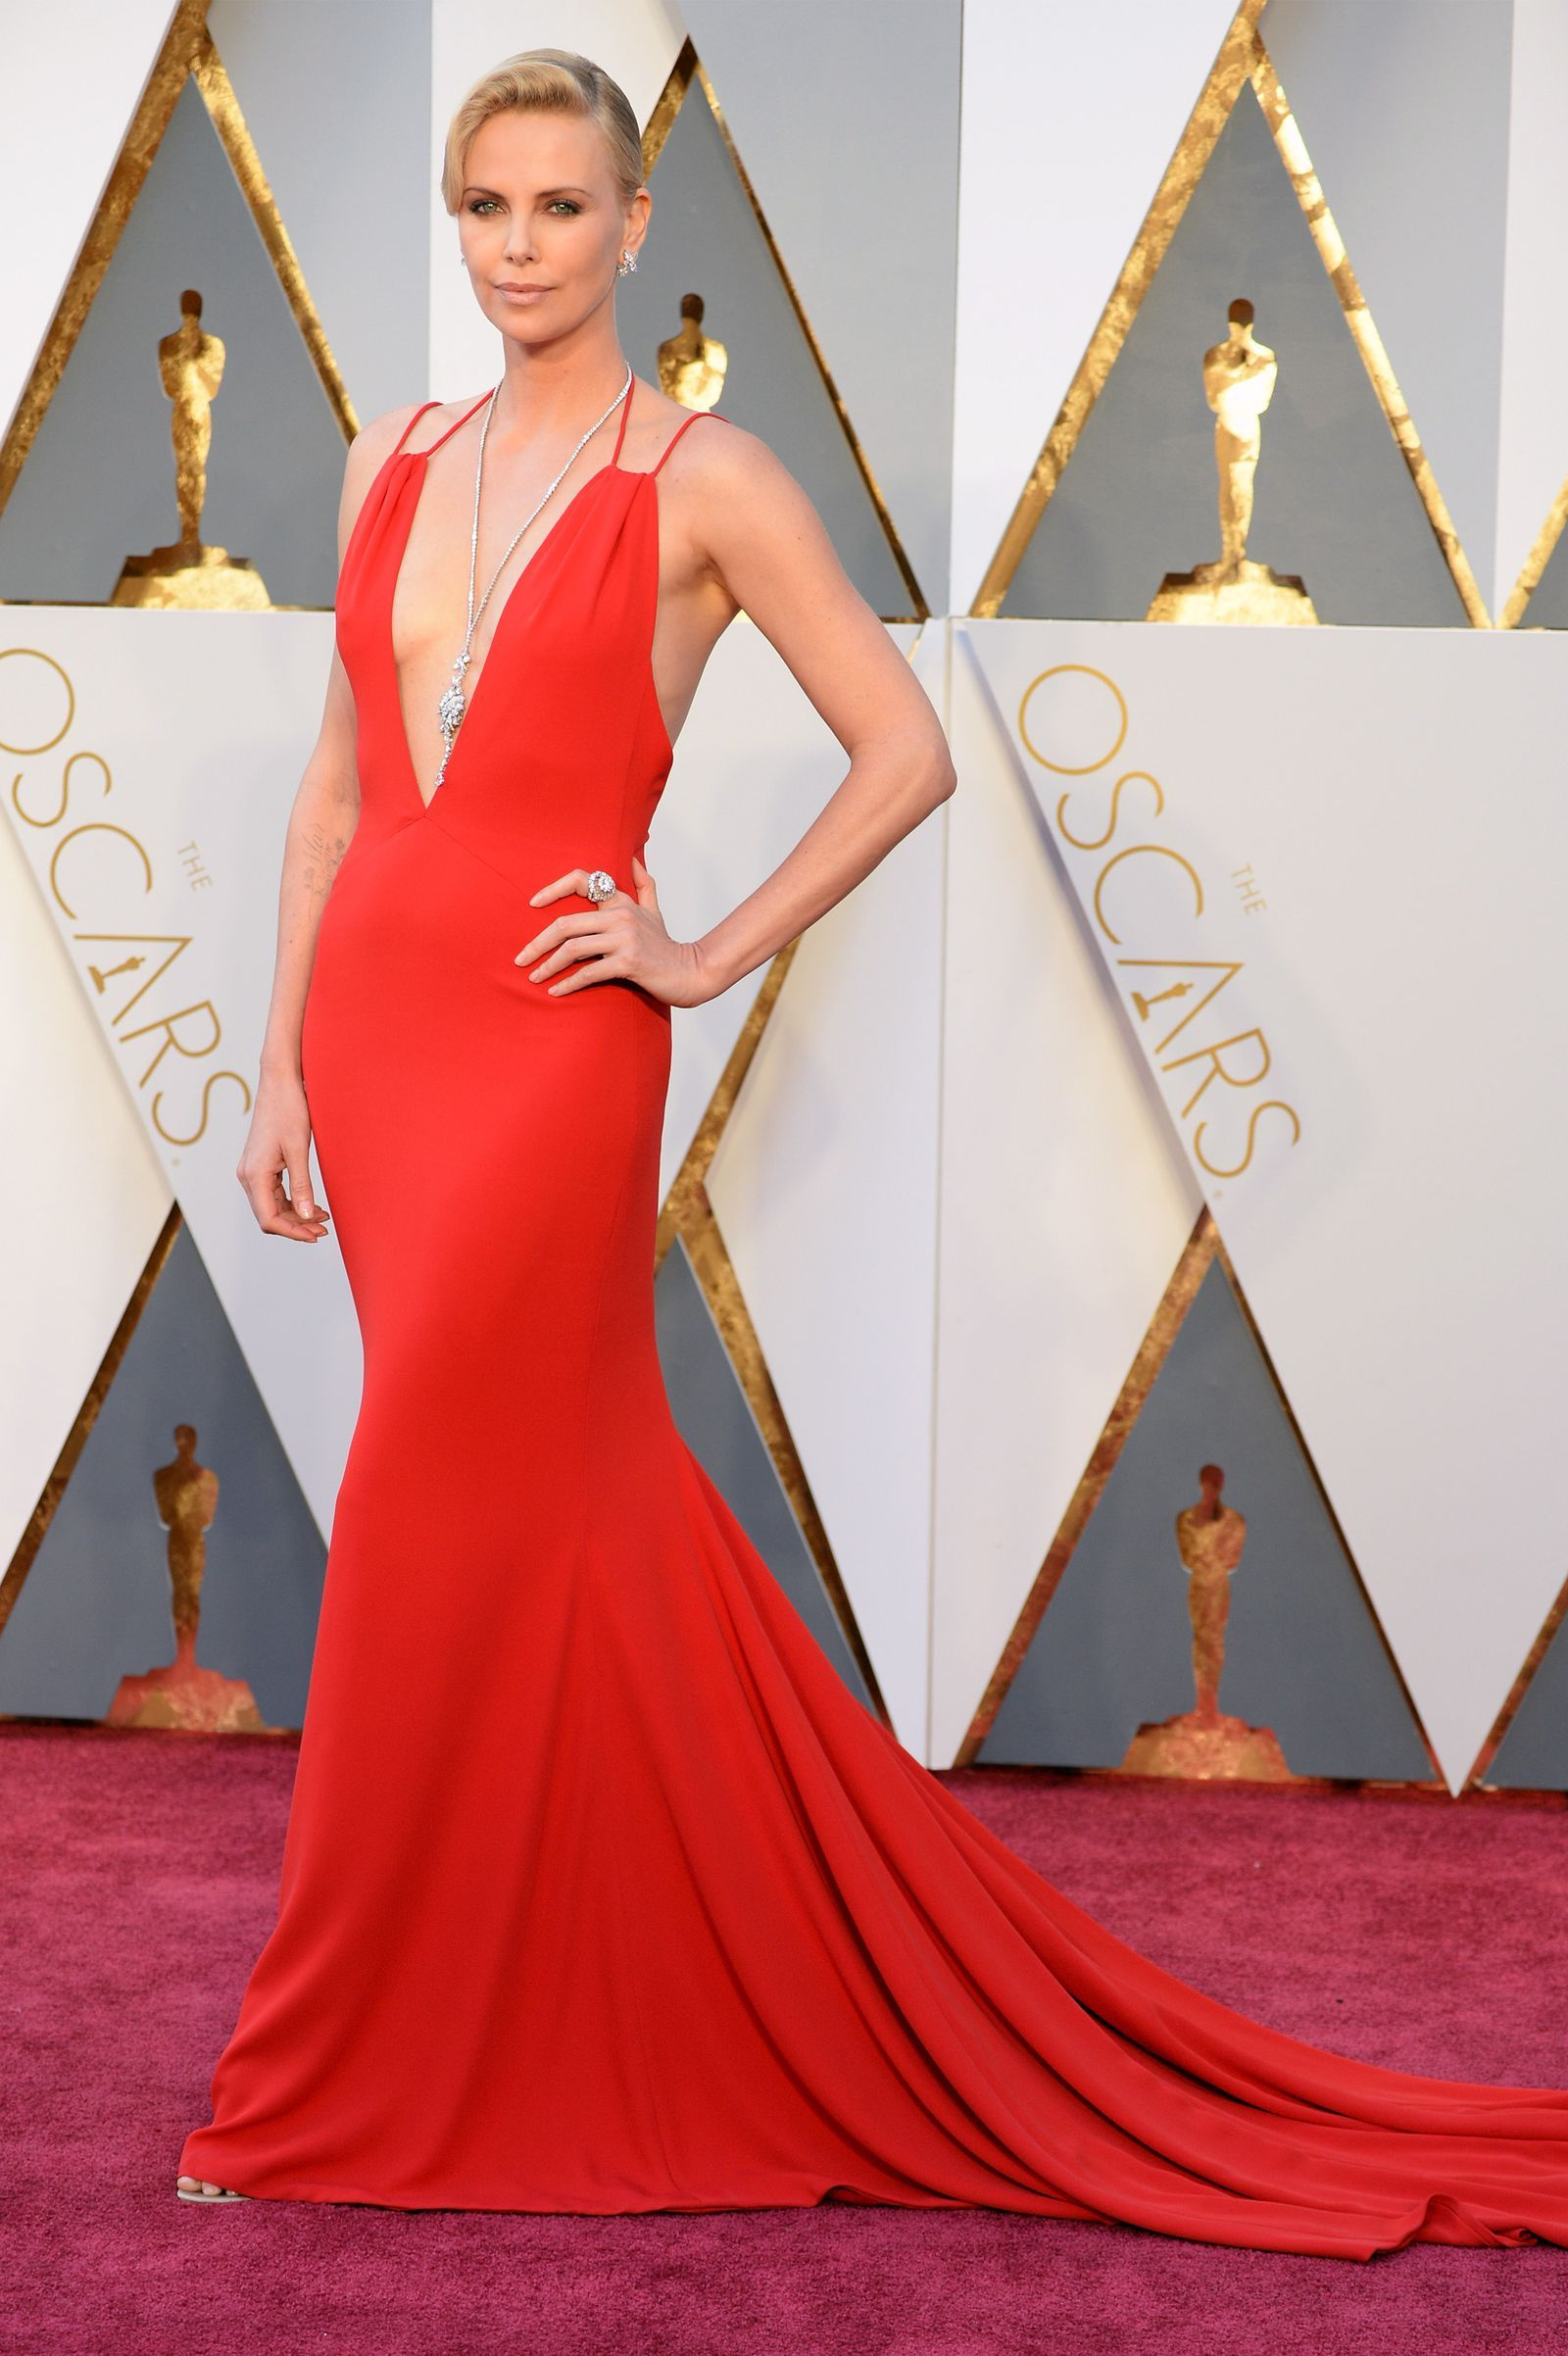 CHARLIZE THERON, OSCARS 2016 IN DIOR COUTURE